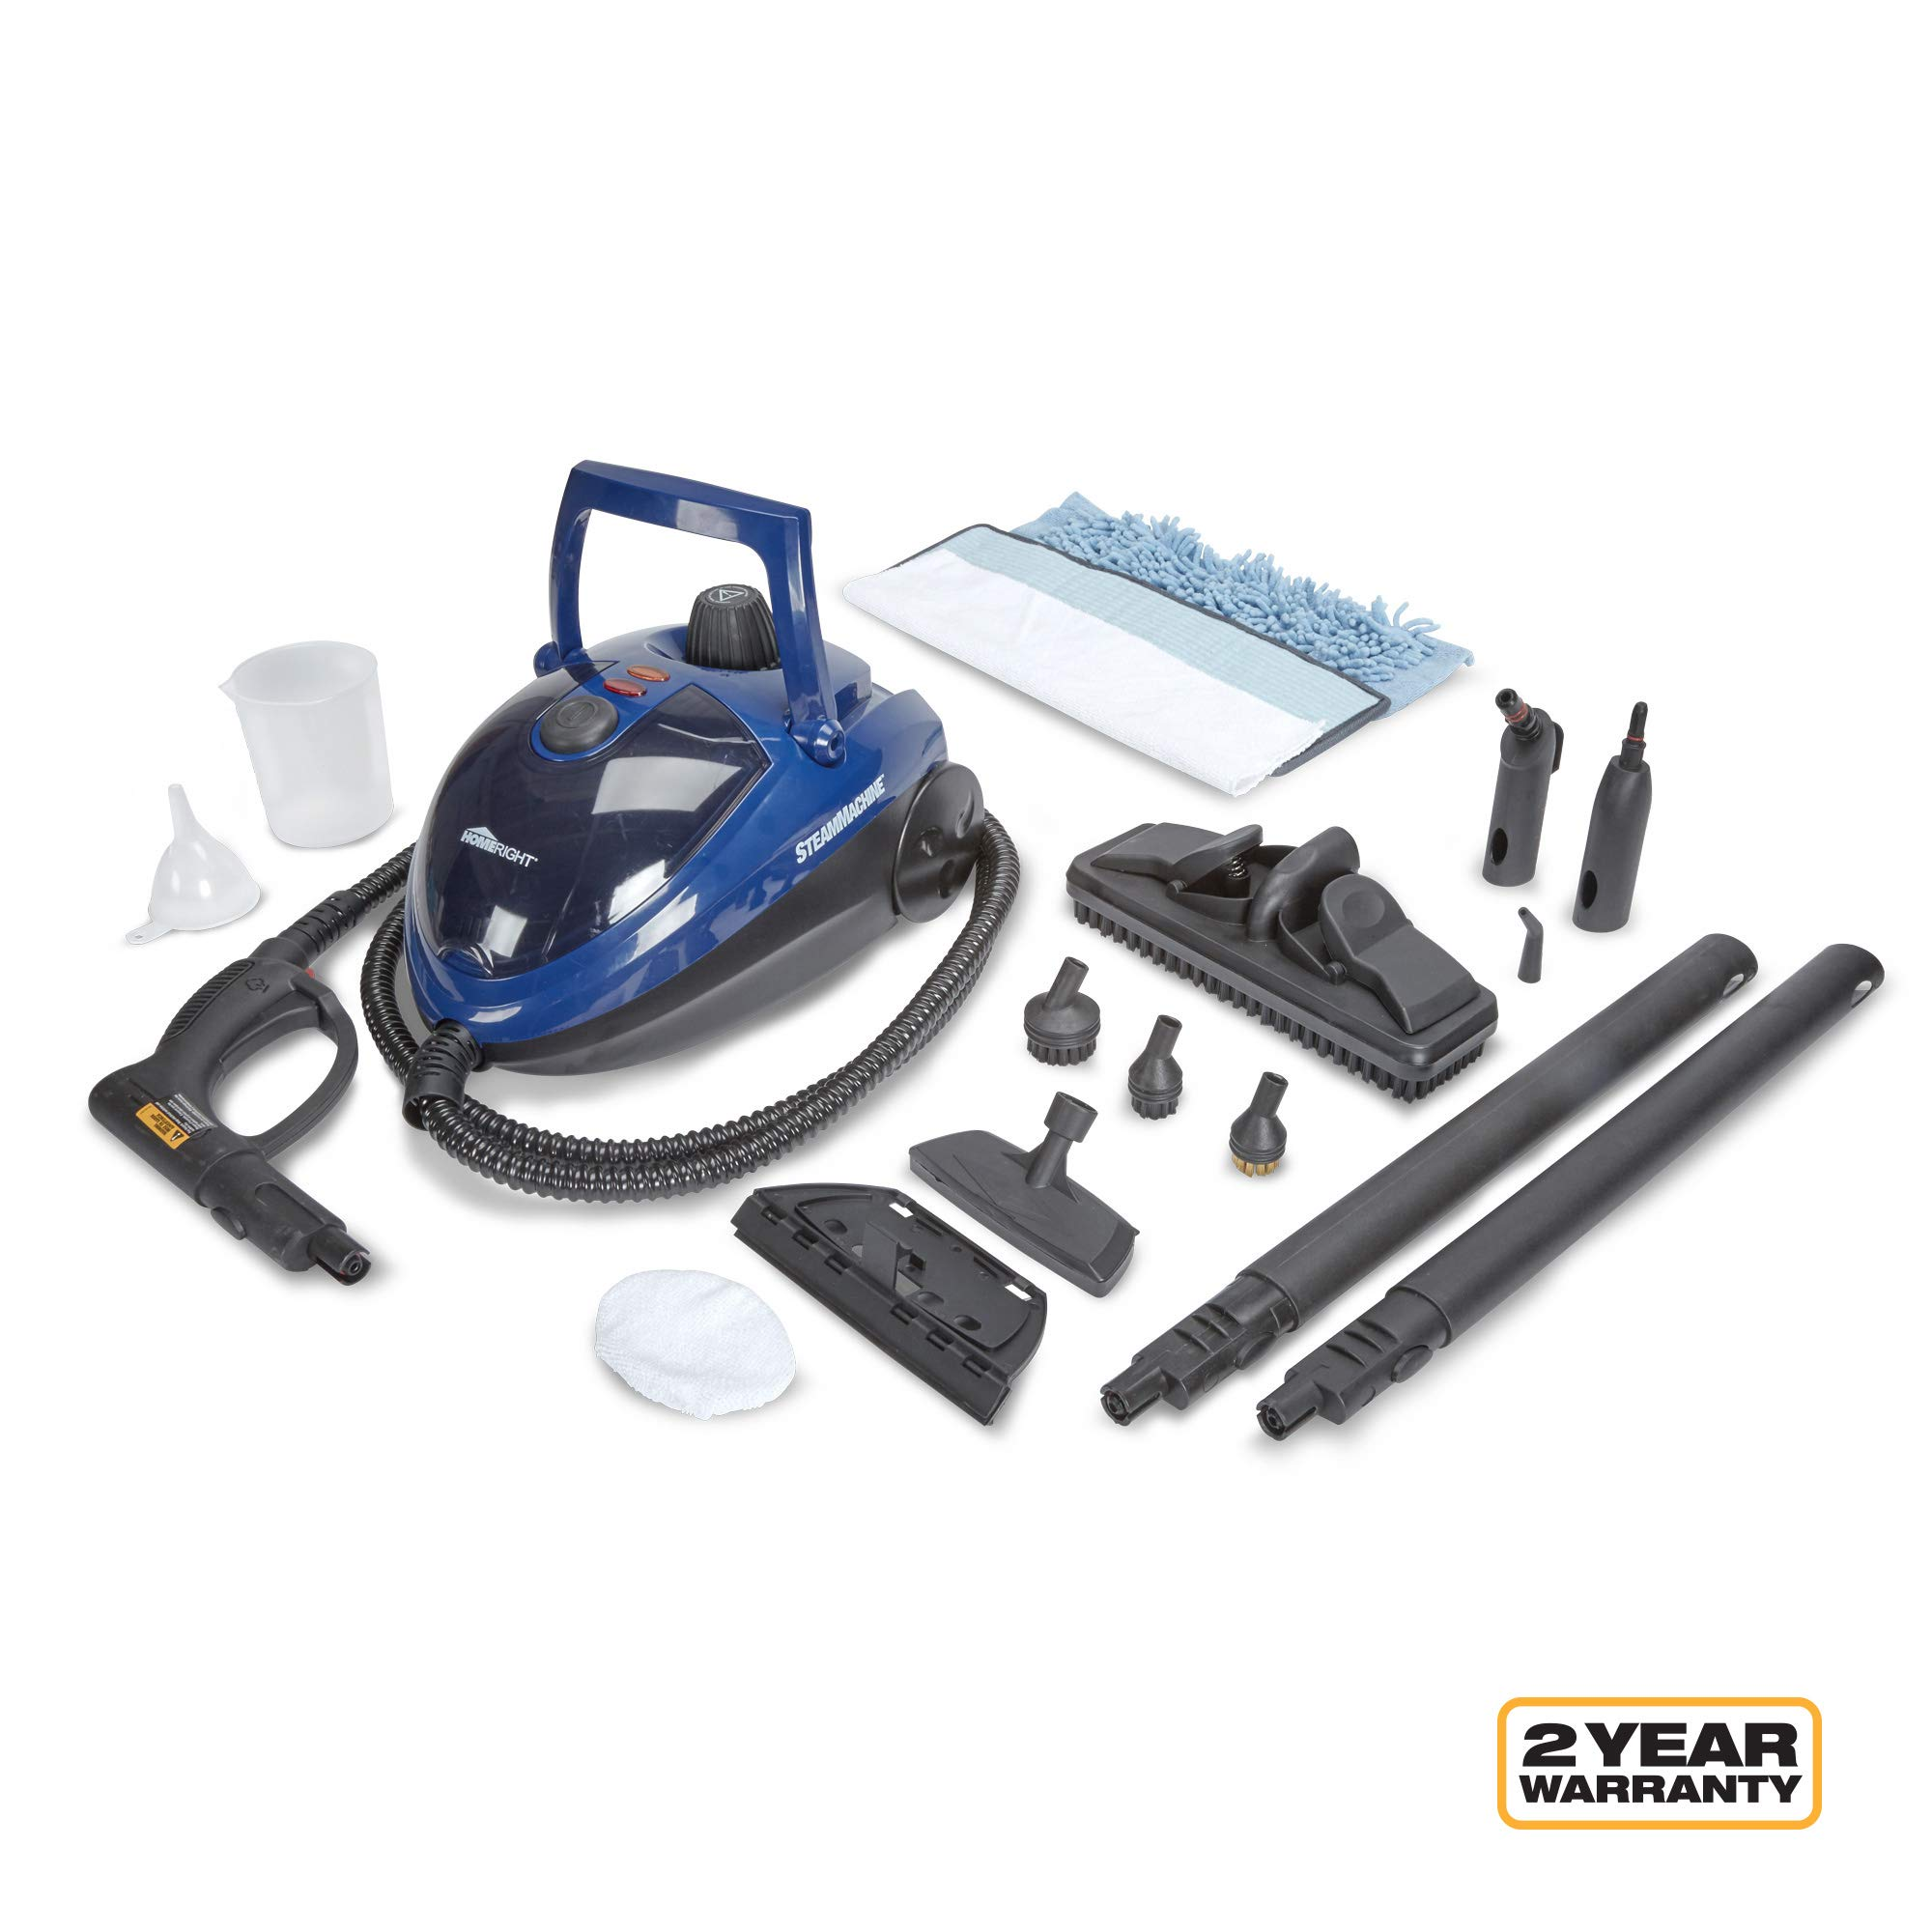 Wagner Spraytech C900053.M SteamMachine Multi-Purpose Home Steamer Steam Cleaner for Cleaning Counters, Floors, Windows, Appliances and Bathrooms, Model 53, Blue by Wagner Spraytech